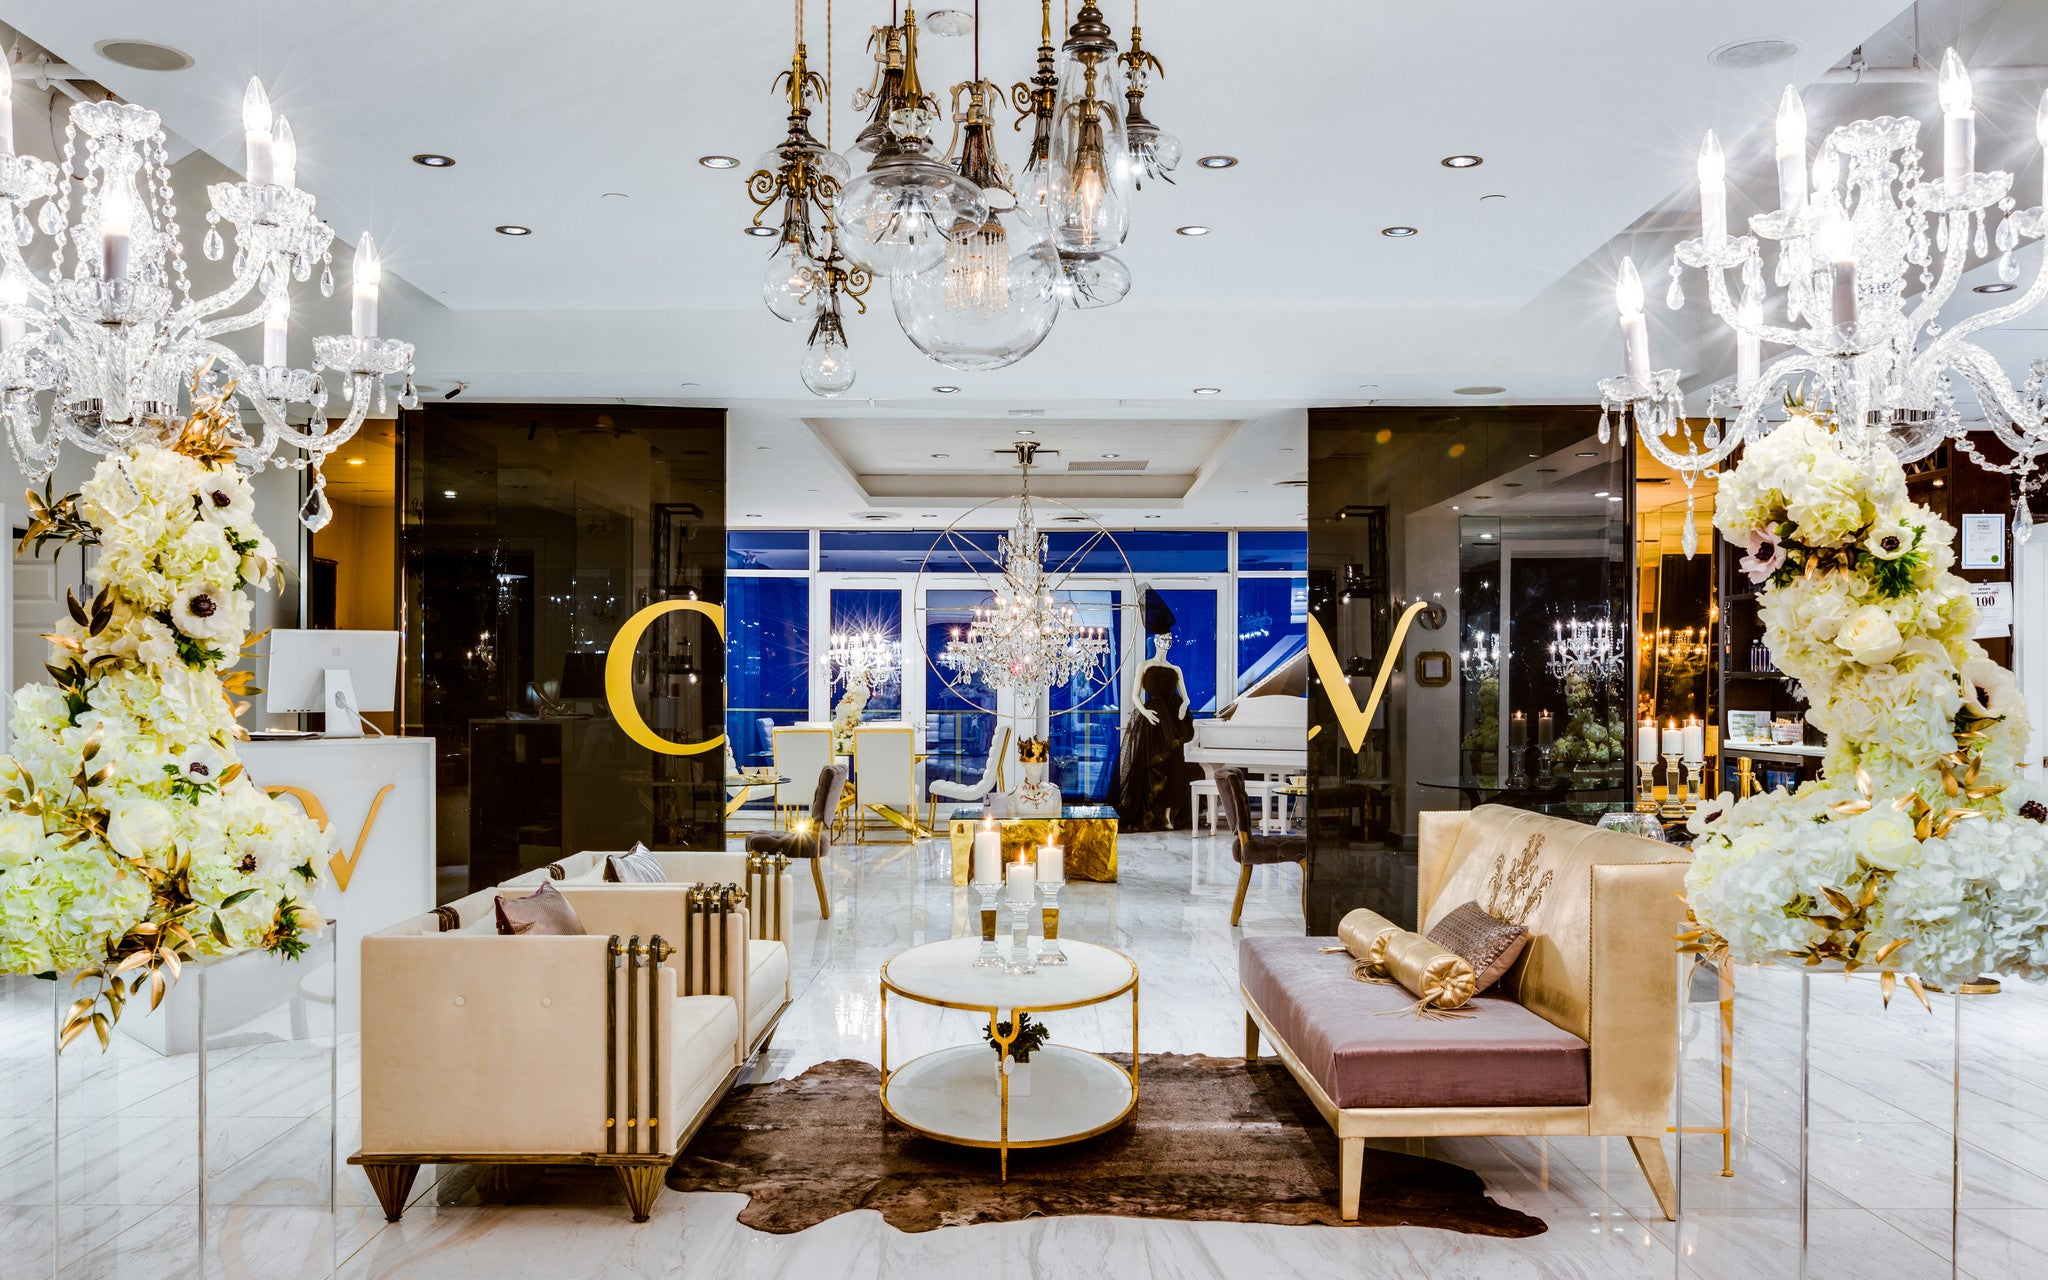 Chateau Versailles Luxury Design Centre | CV Gallery - High-end European Furniture & Decor for Sale